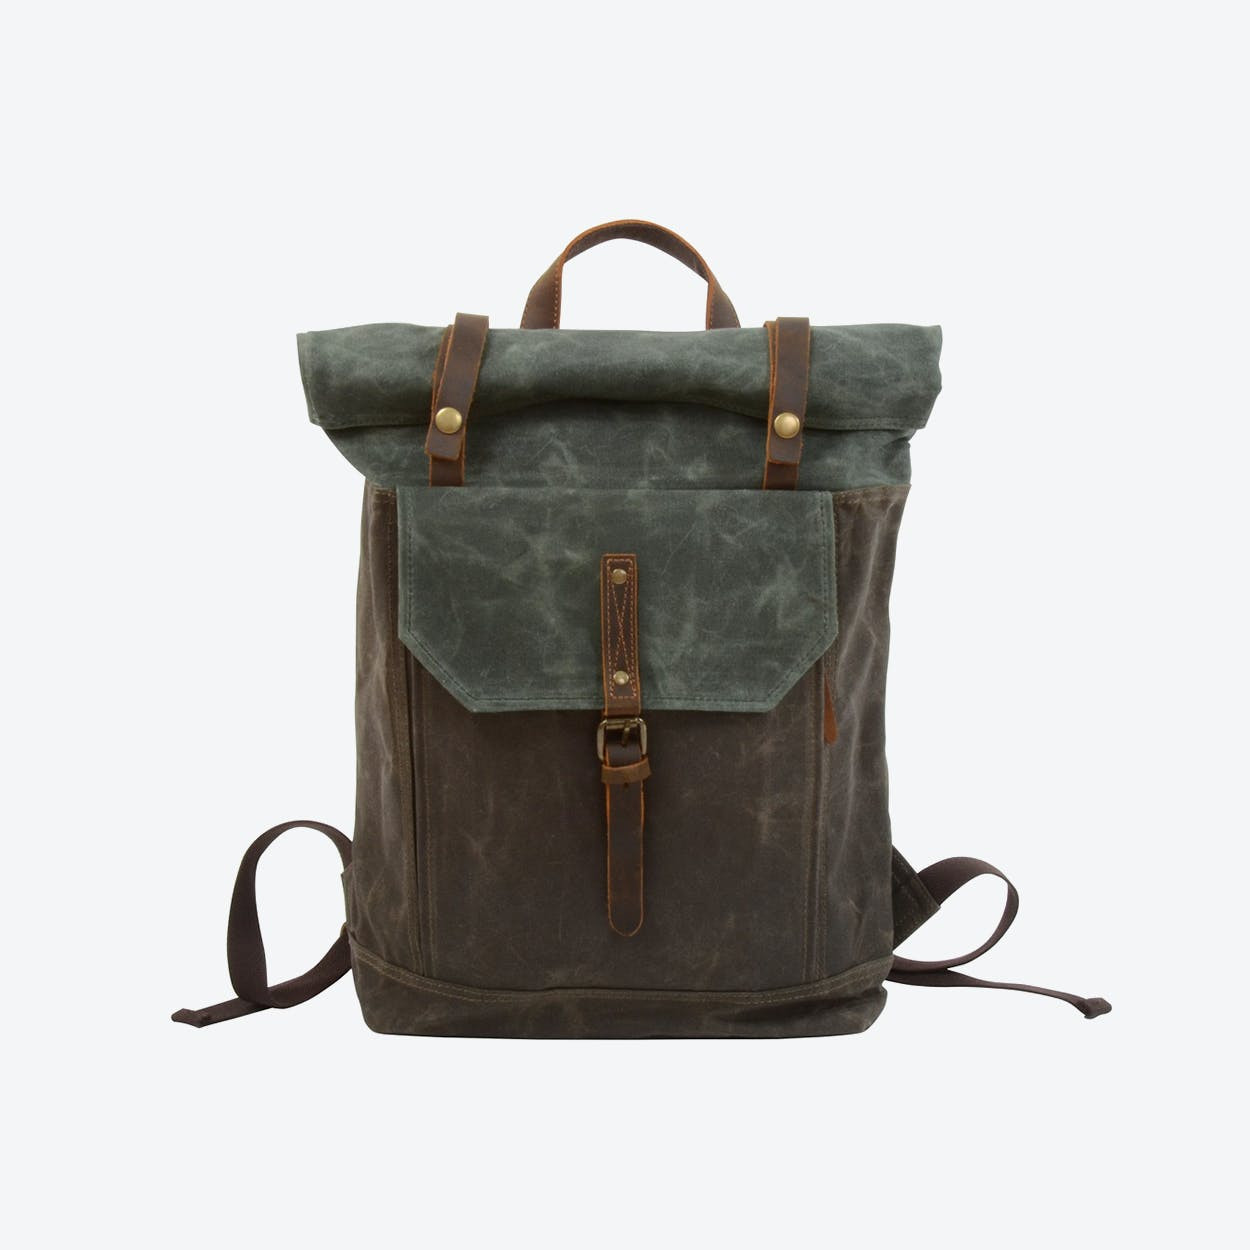 Waxed Canvas Rolltop Backpack in Teal